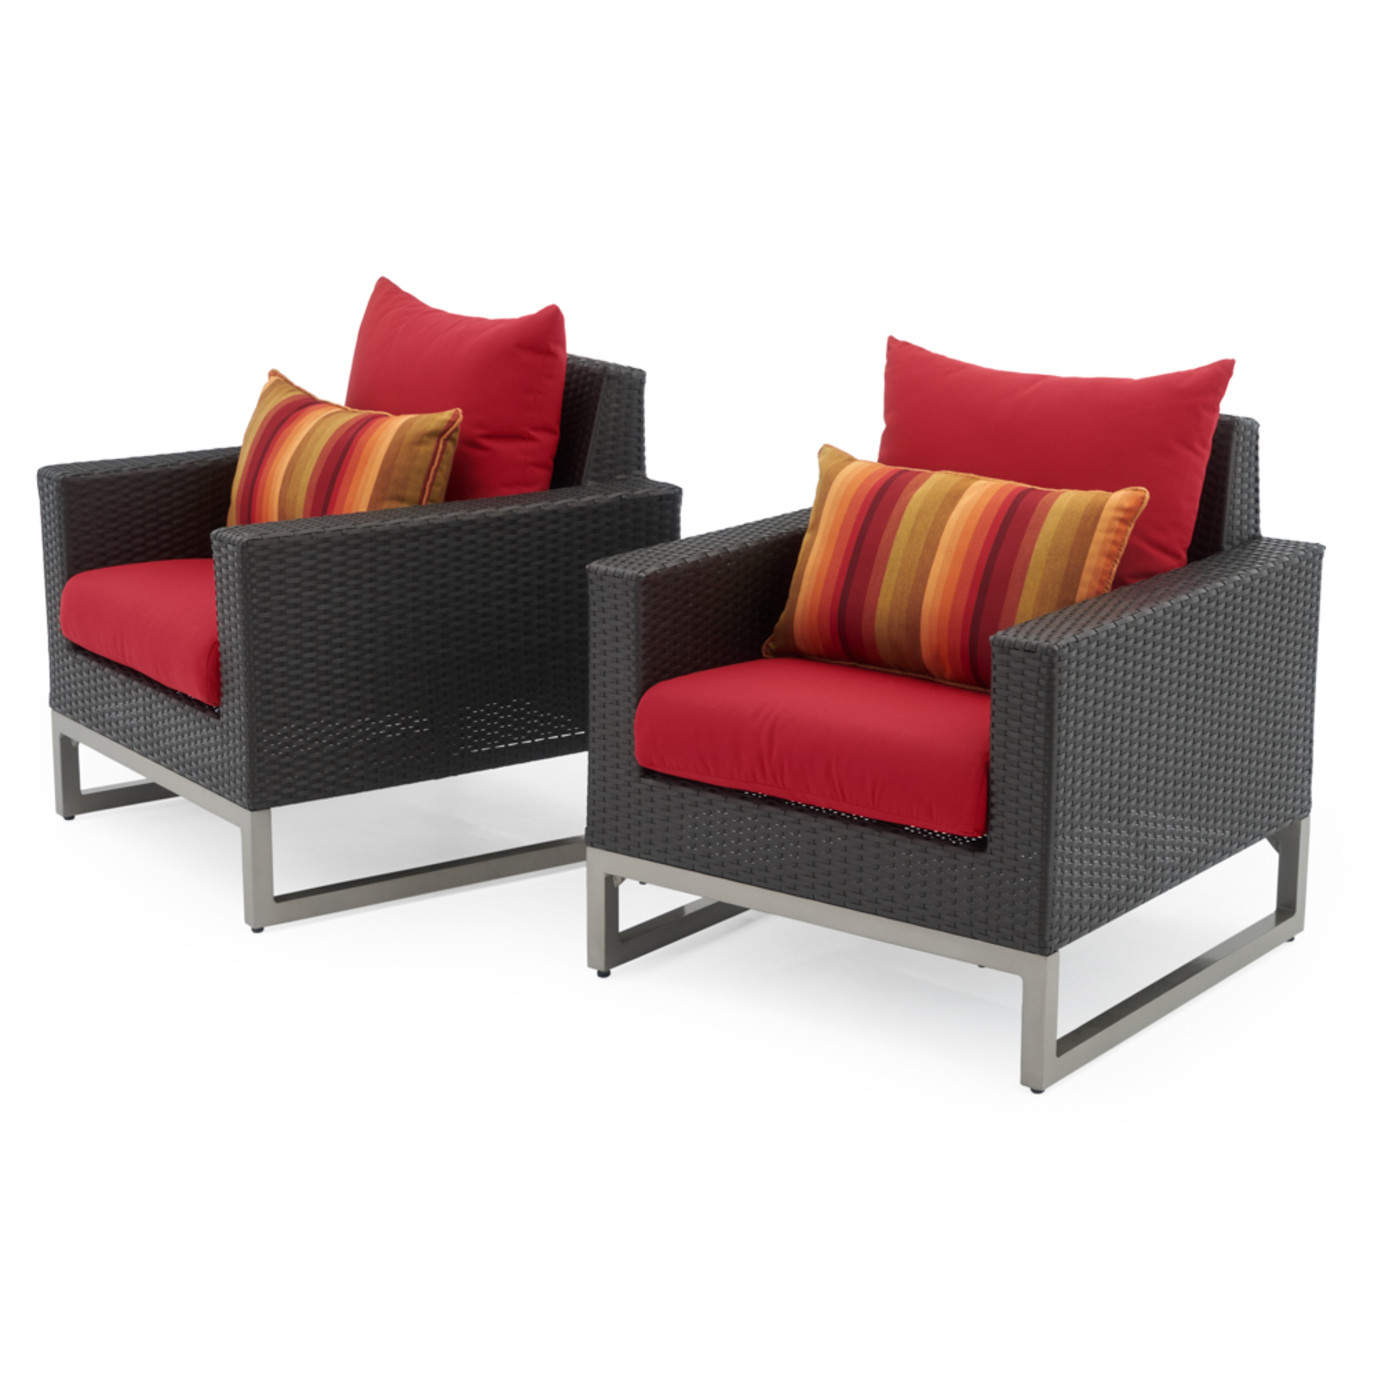 Milo Espresso Sunset Collection Red Club Chair